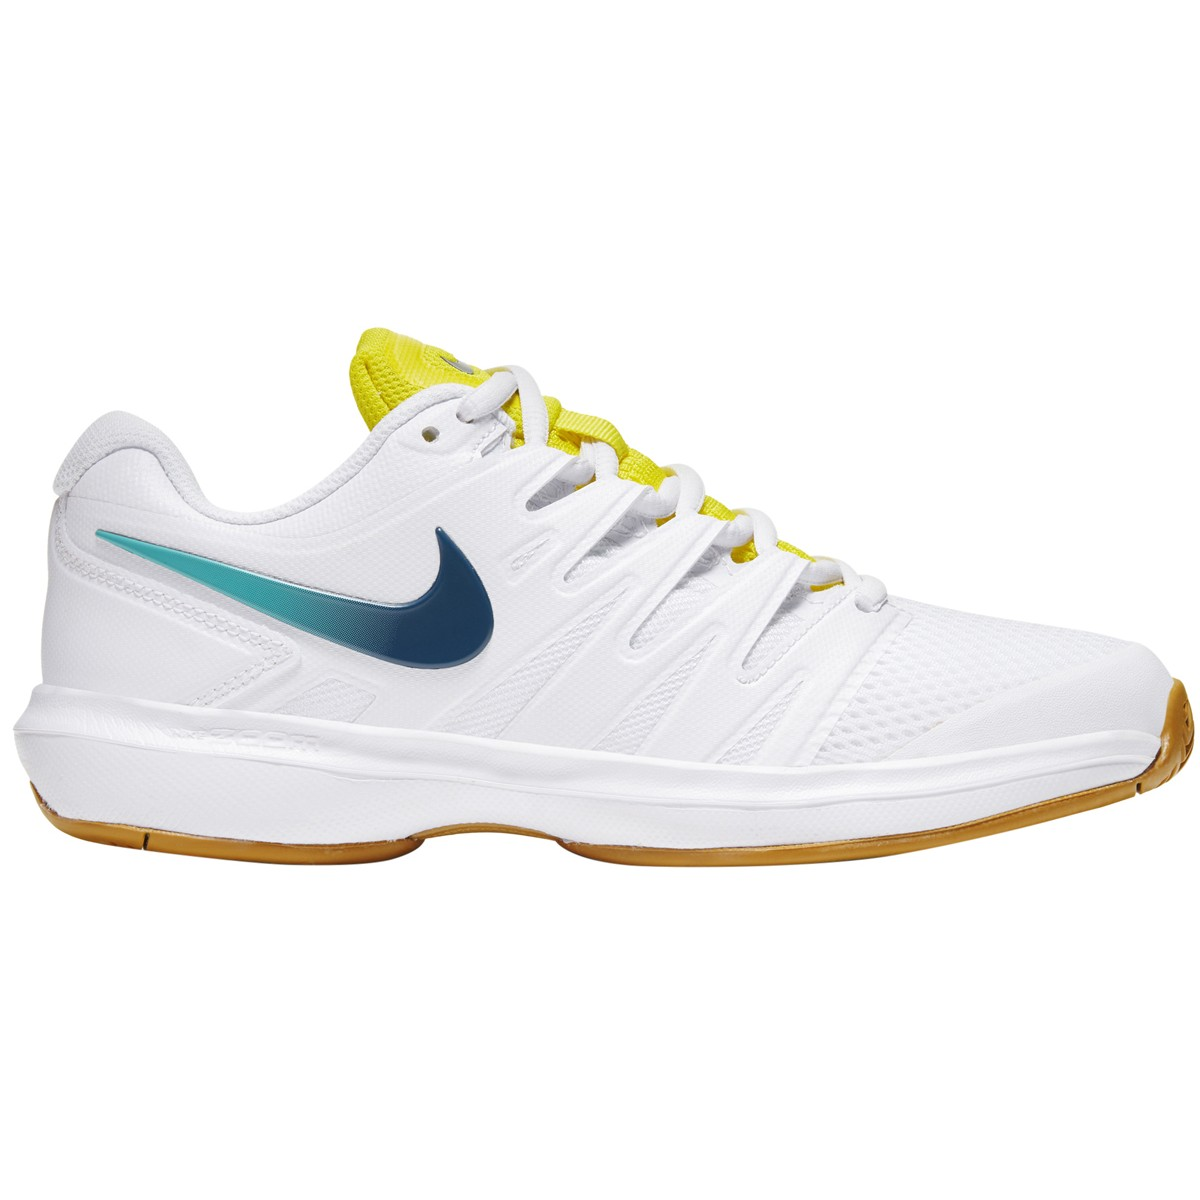 CHAUSSURES NIKE FEMME AIR ZOOM PRESTIGE TOUTES SURFACES